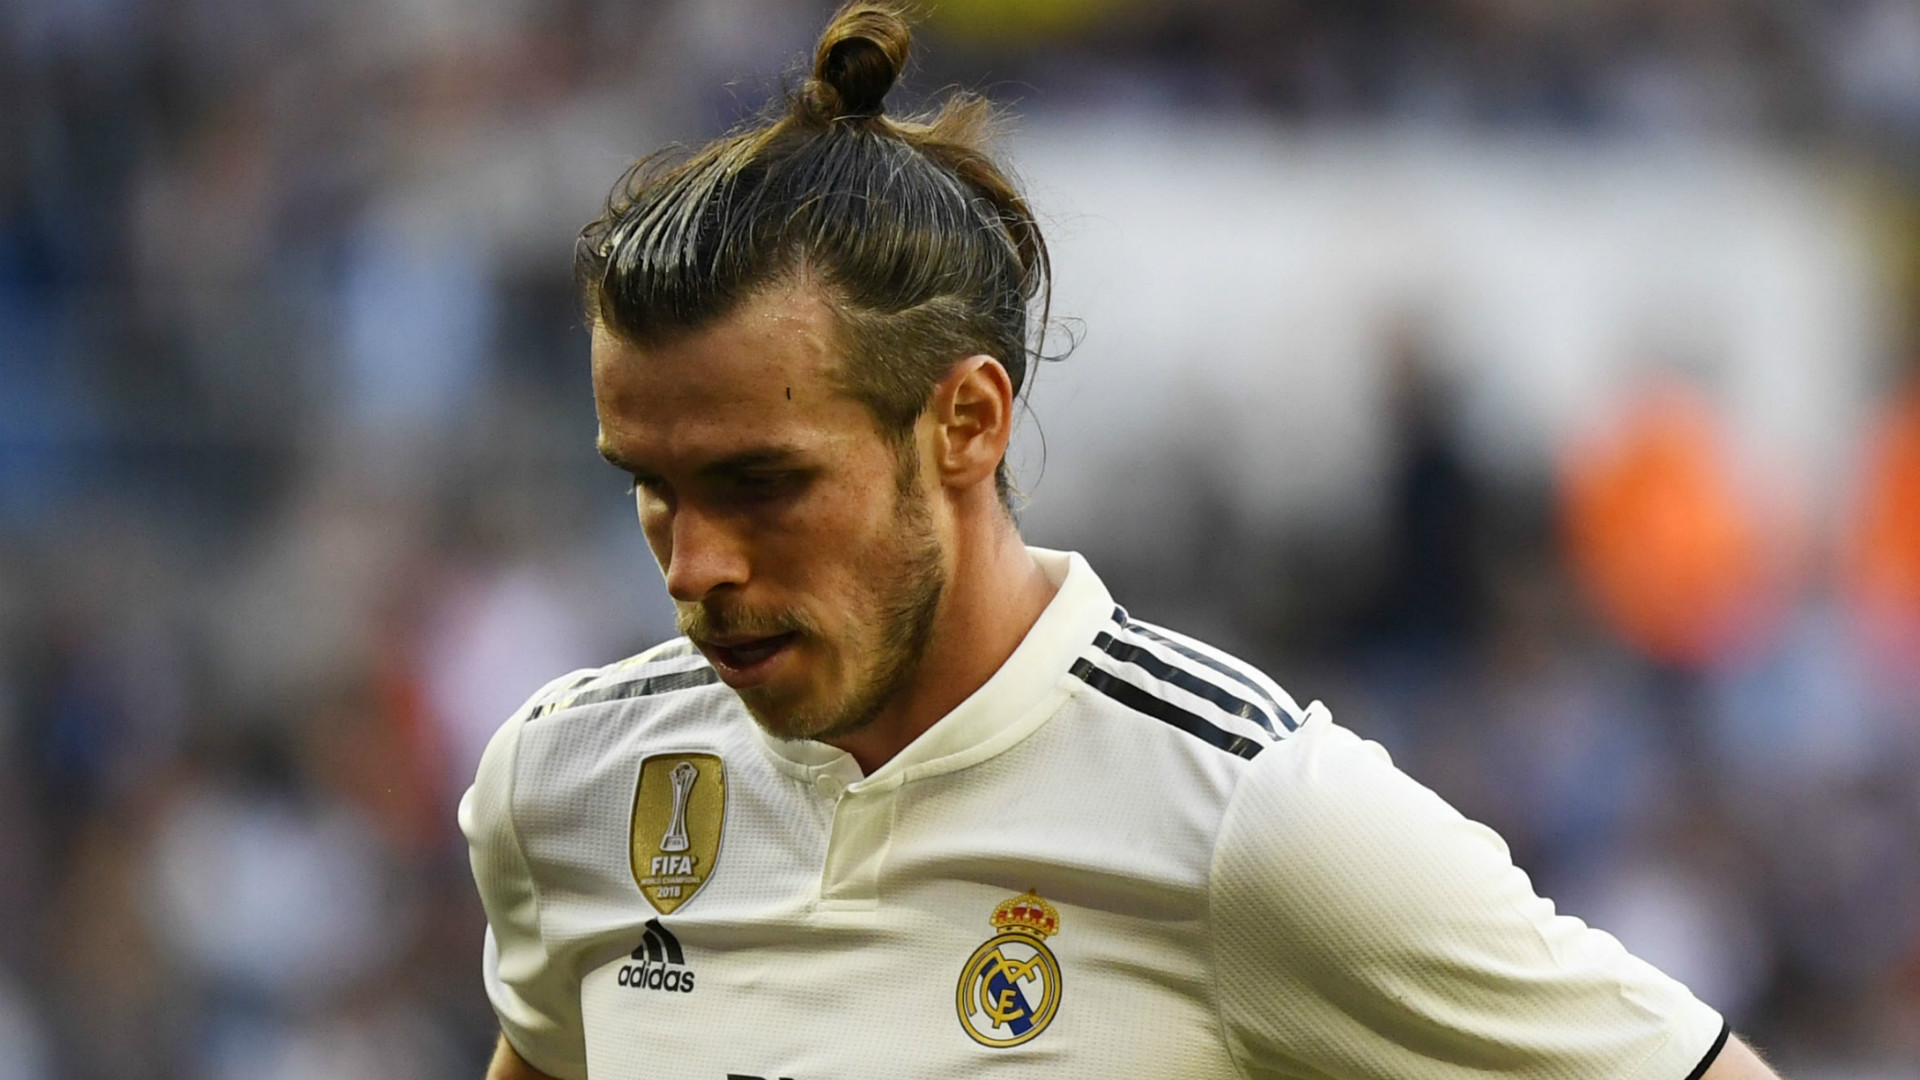 'Gareth Bale Needs To Be An A***hole At Real Madrid'